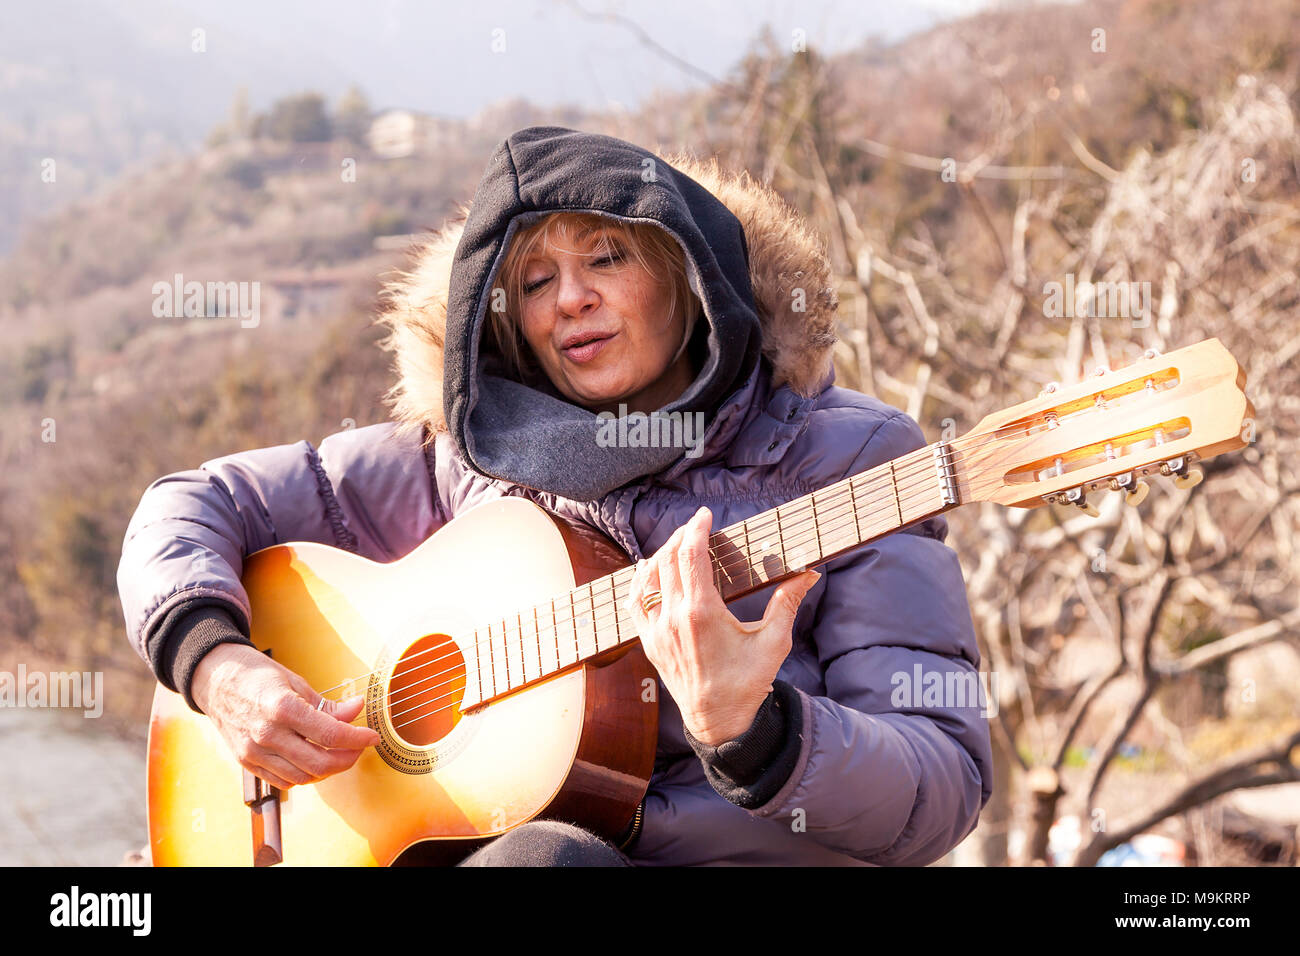 portrait mature woman playing guitar stock photos & portrait mature